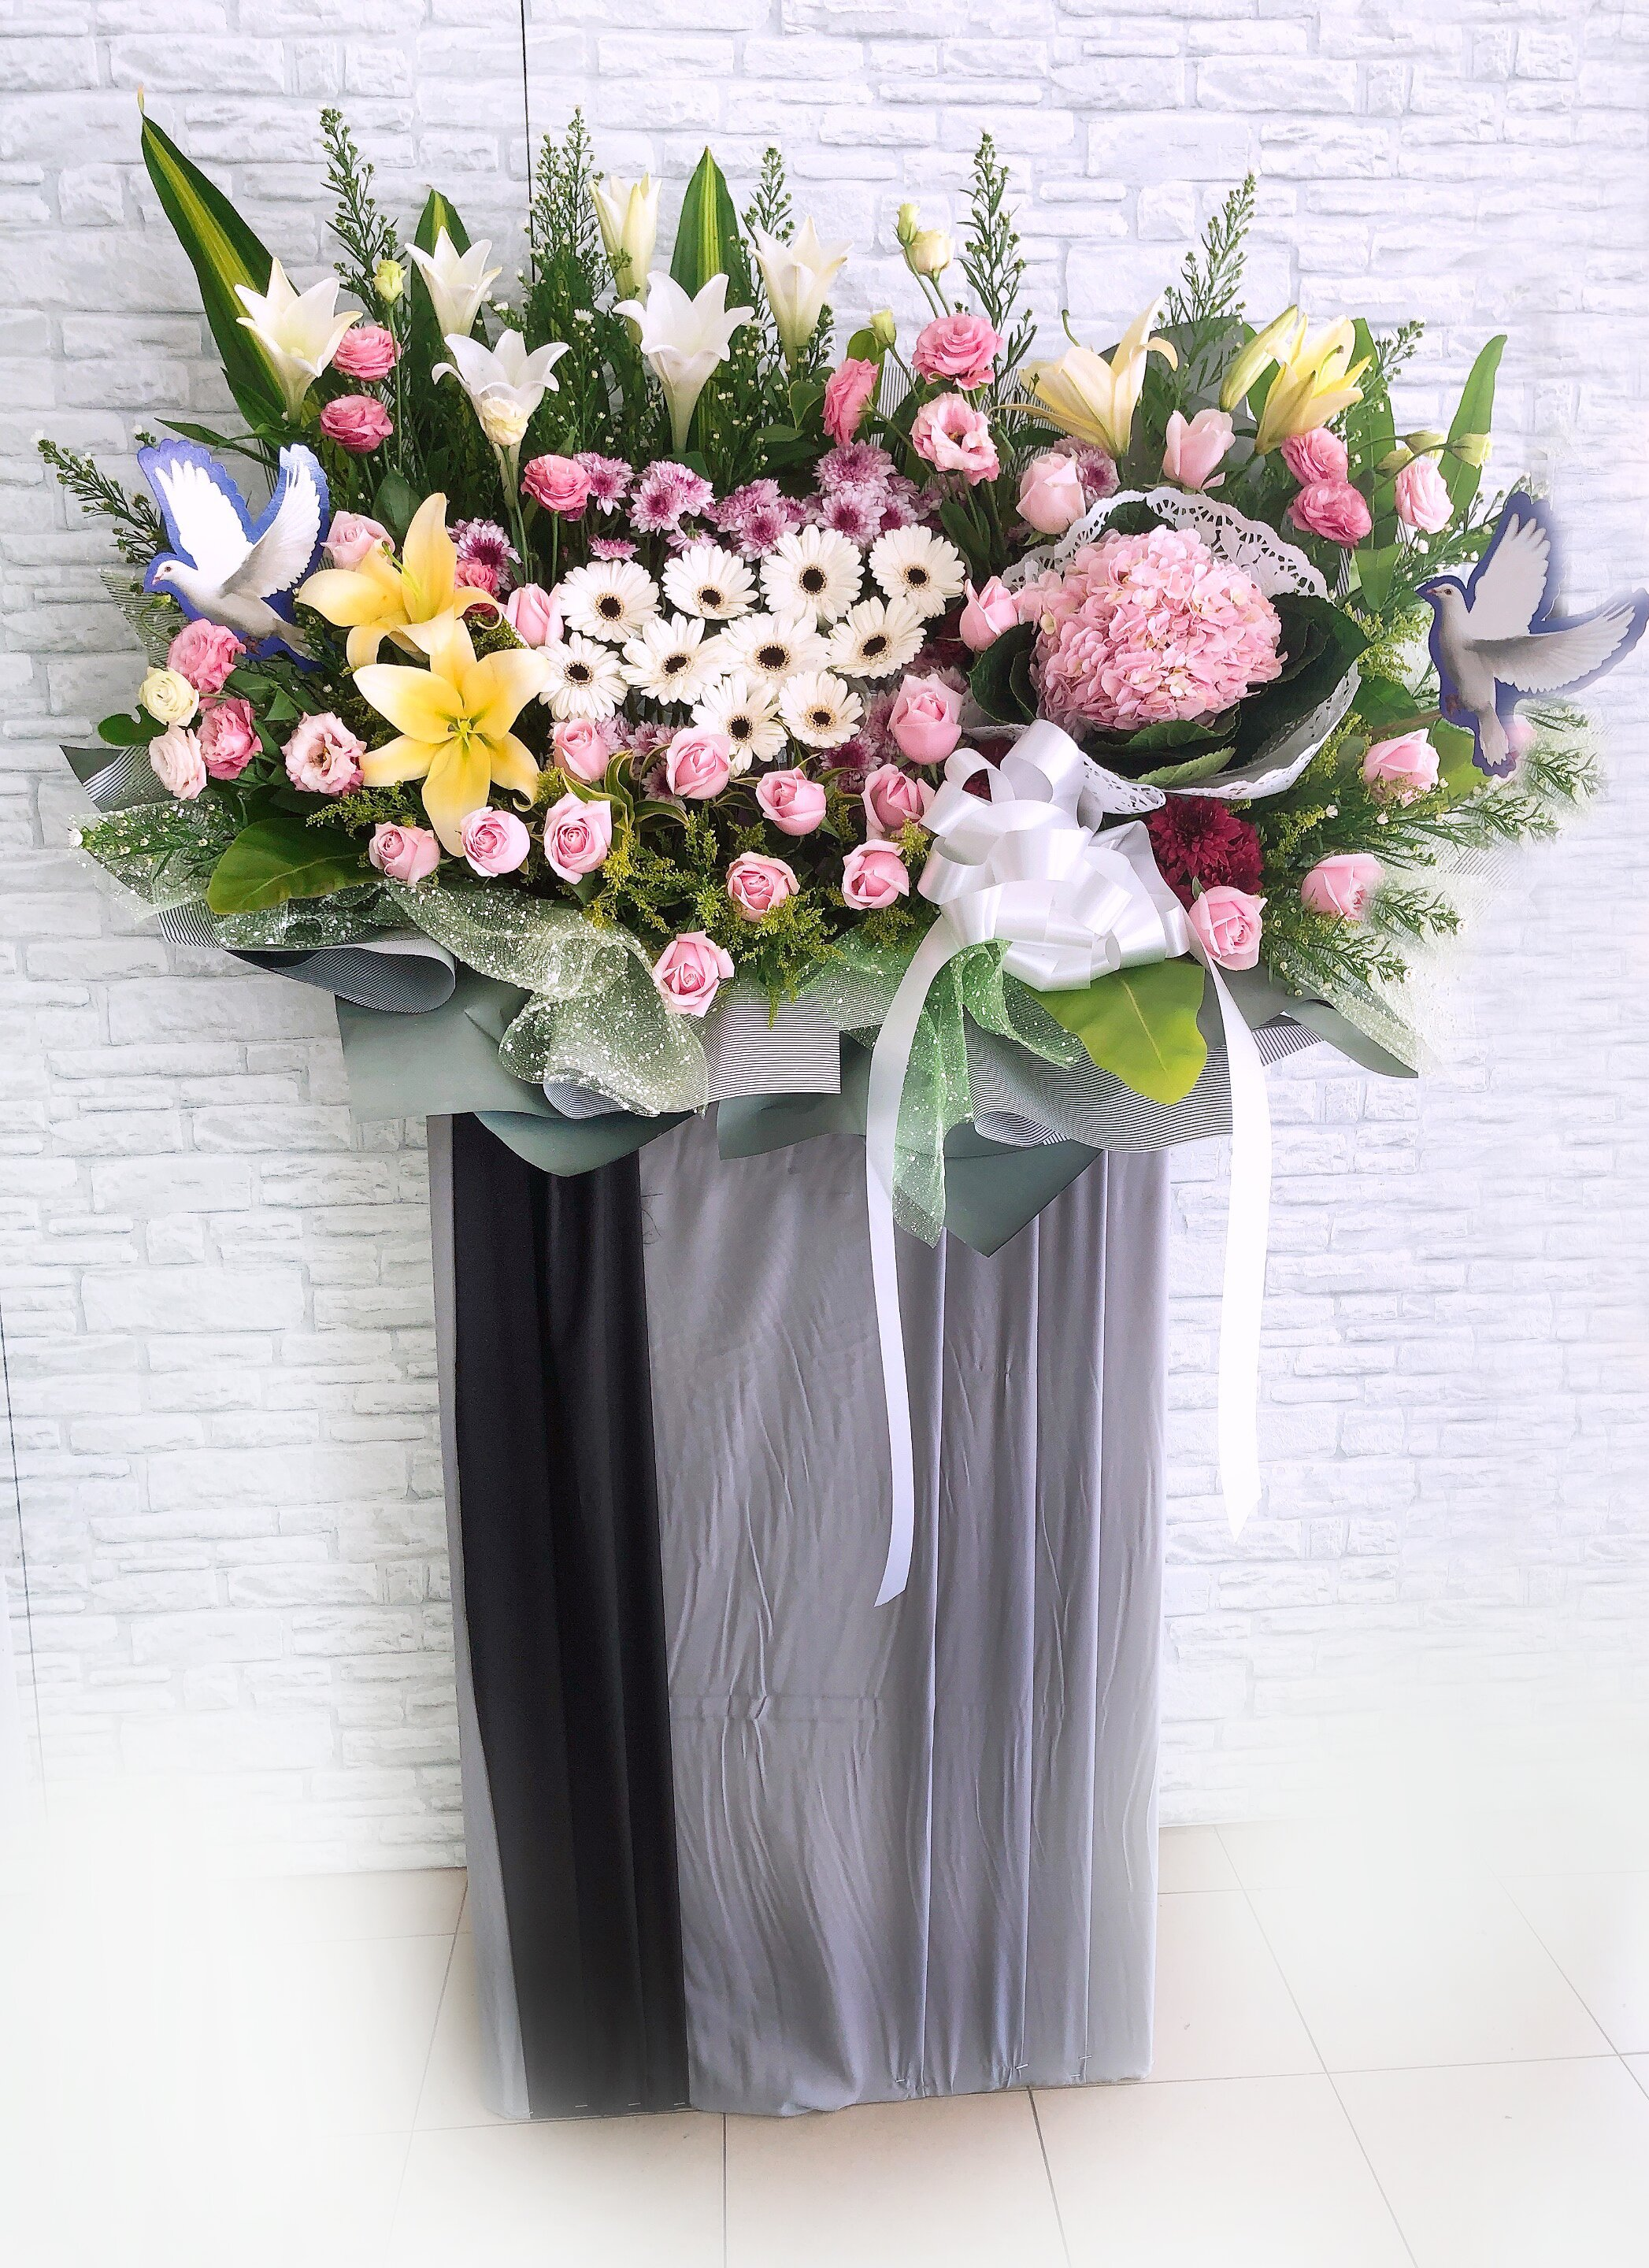 Great Respect - Freeland Floral 自由花苑